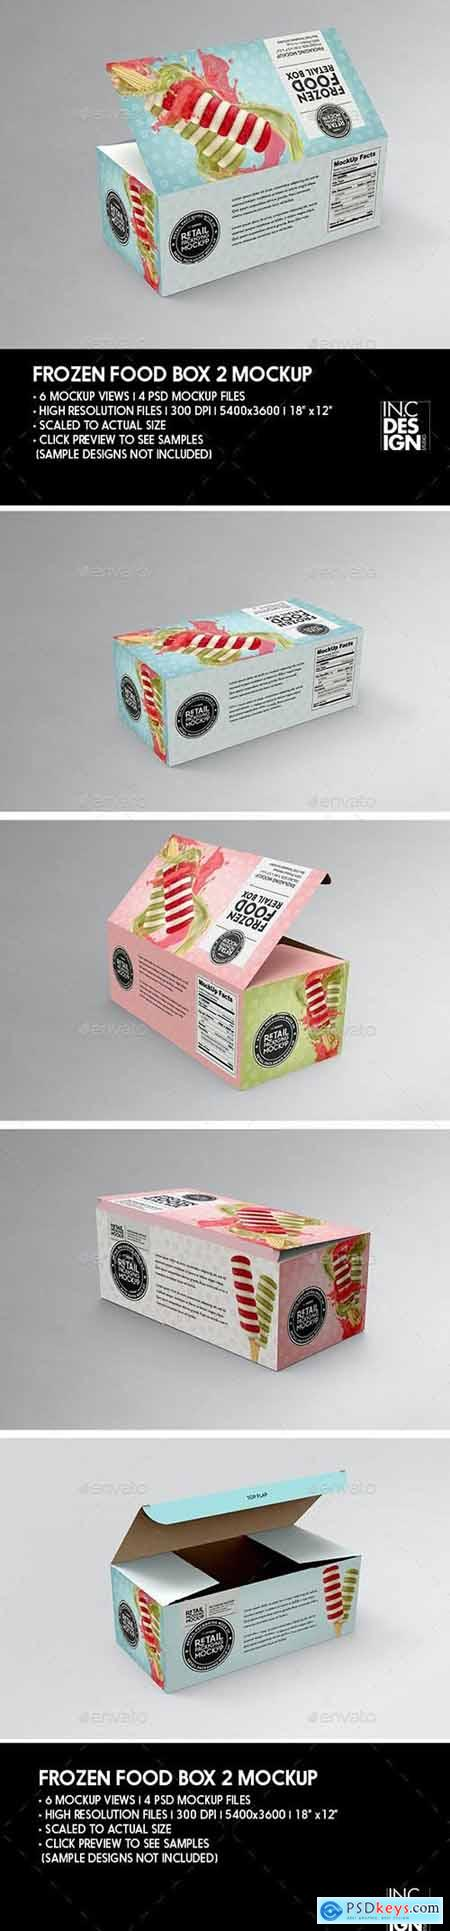 Big Frozen Food Box Packaging Mockup 29889156